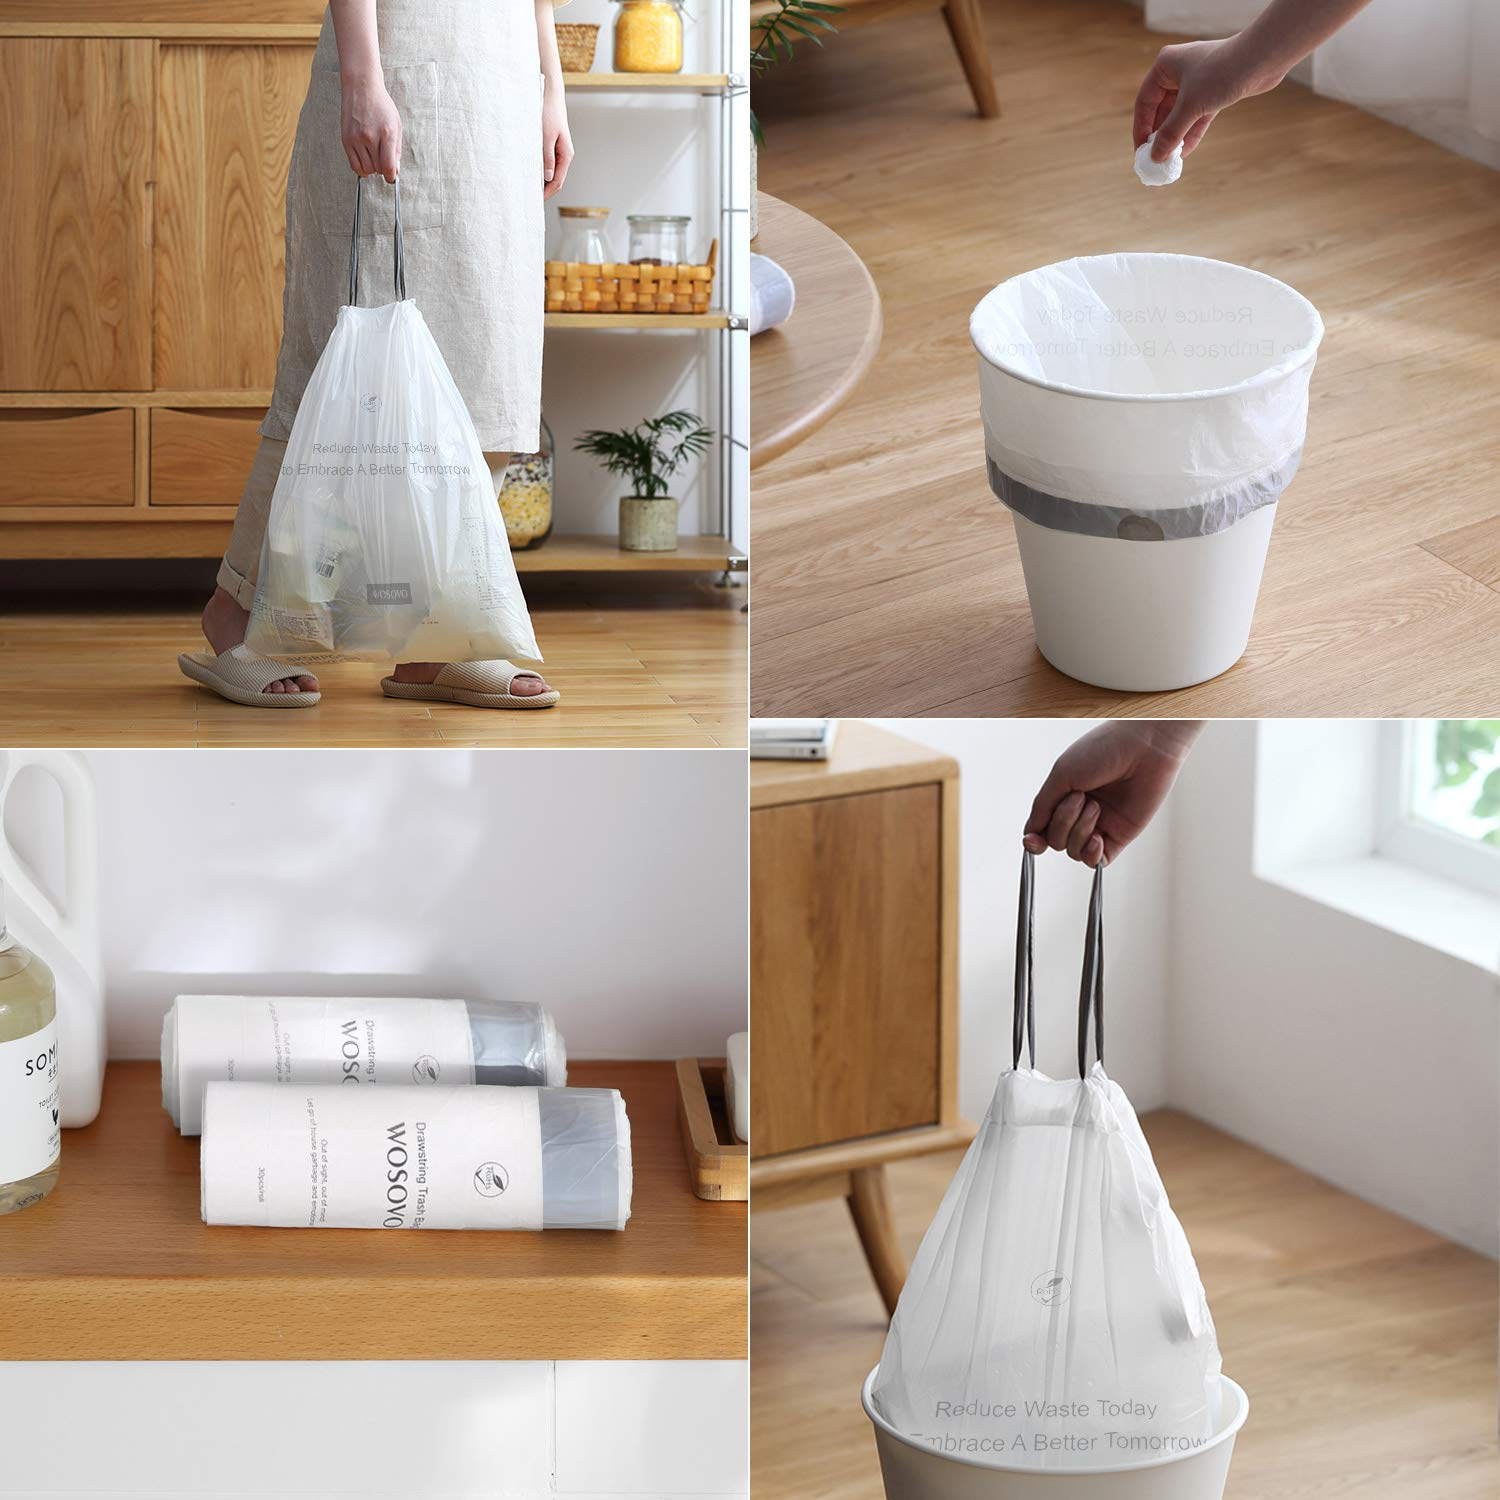 4 Gallon Small Trash Bags Drawstring, Bath Bedroom Kitchen Garbage Bags Heavy Duty, Home Office Wastebasket Bags Unscented, 180 Counts, 17.7 X 19.7